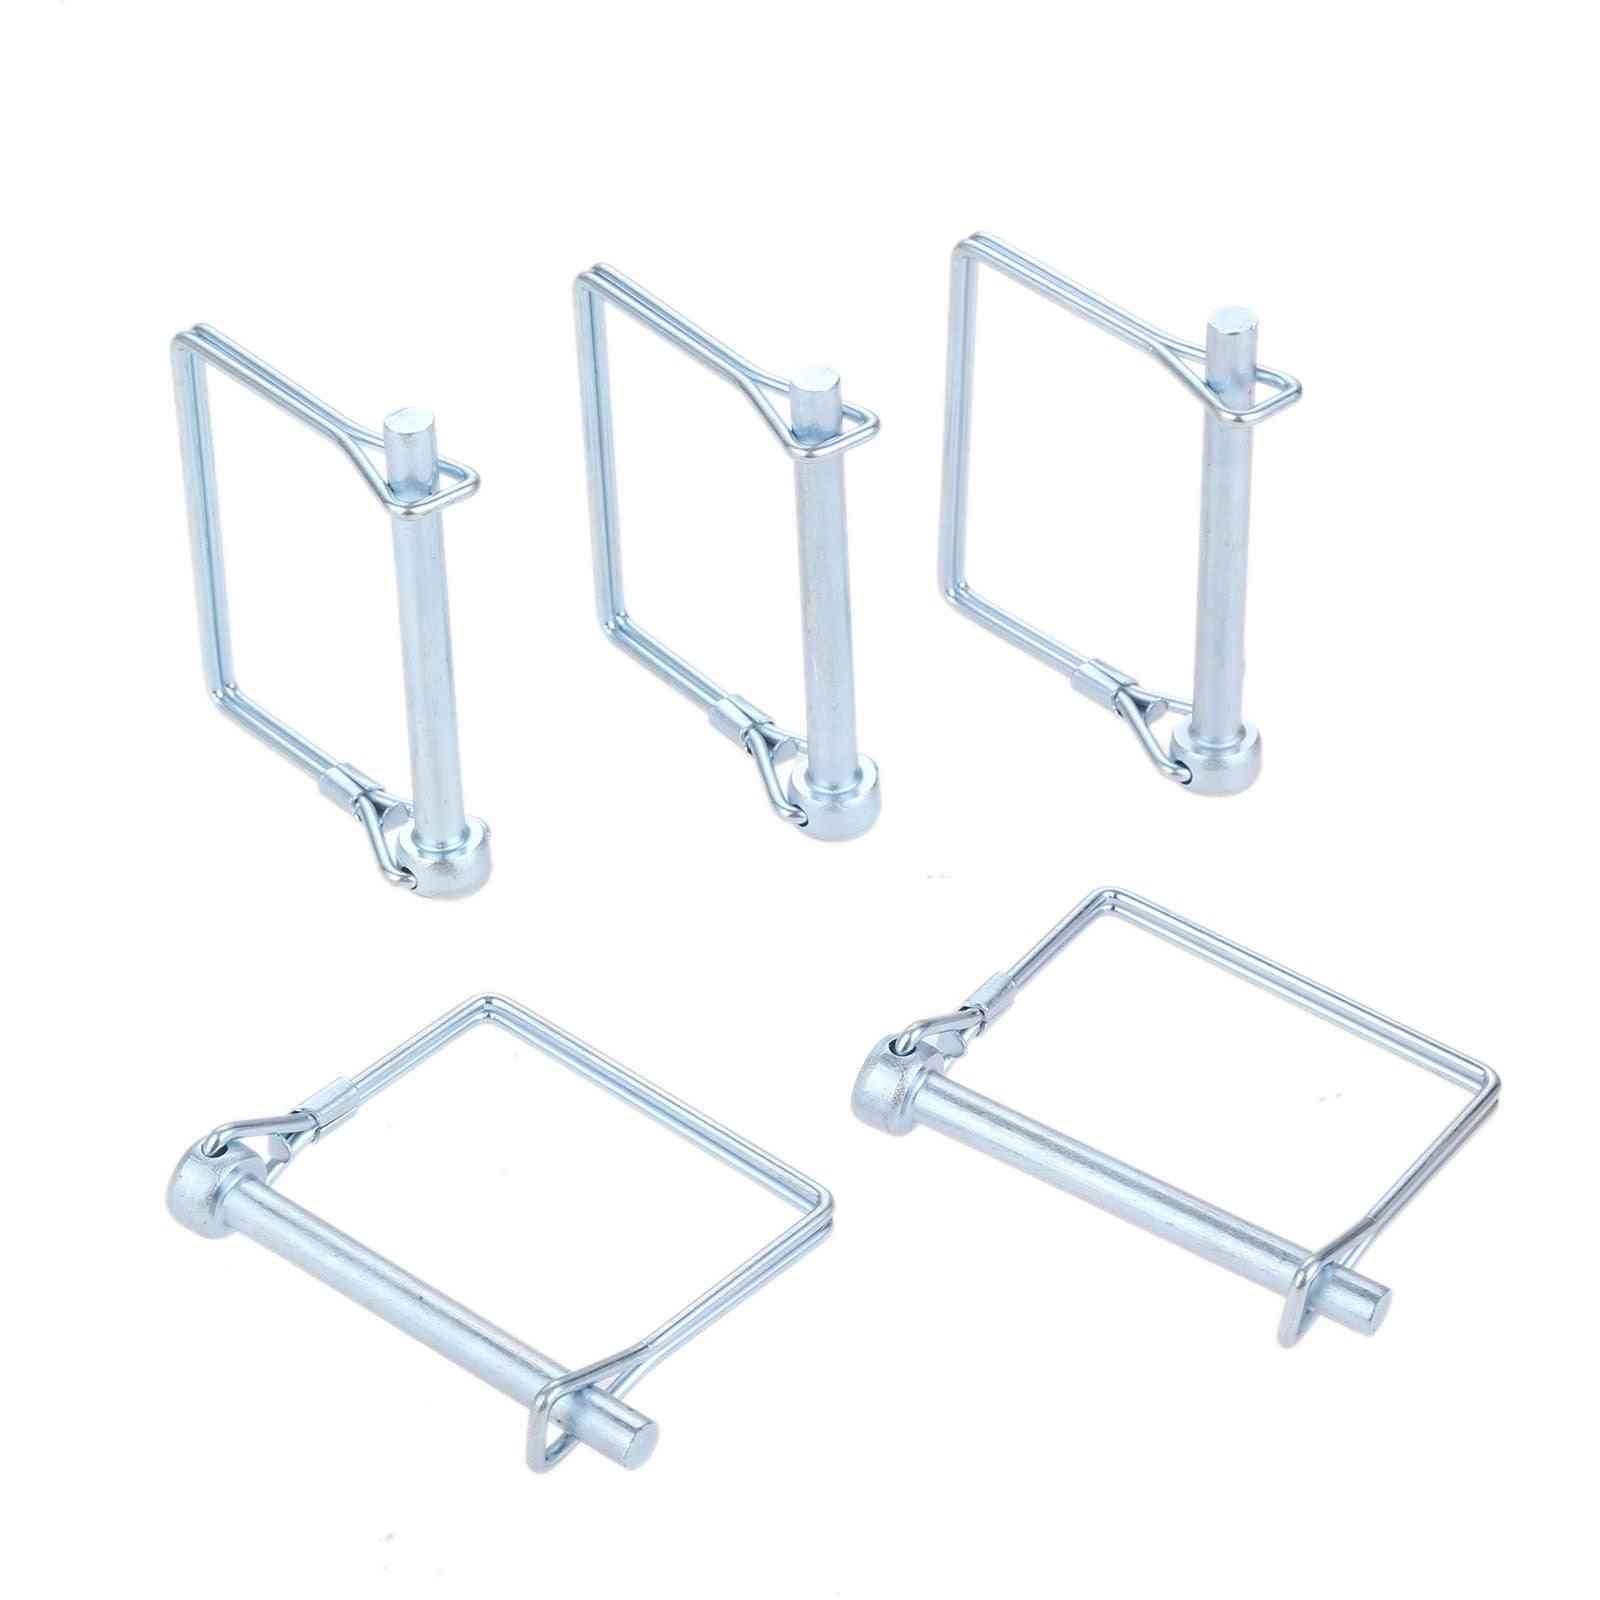 Steel Auto Car Trailer Coupler Safety Square Shaft Pin Lock